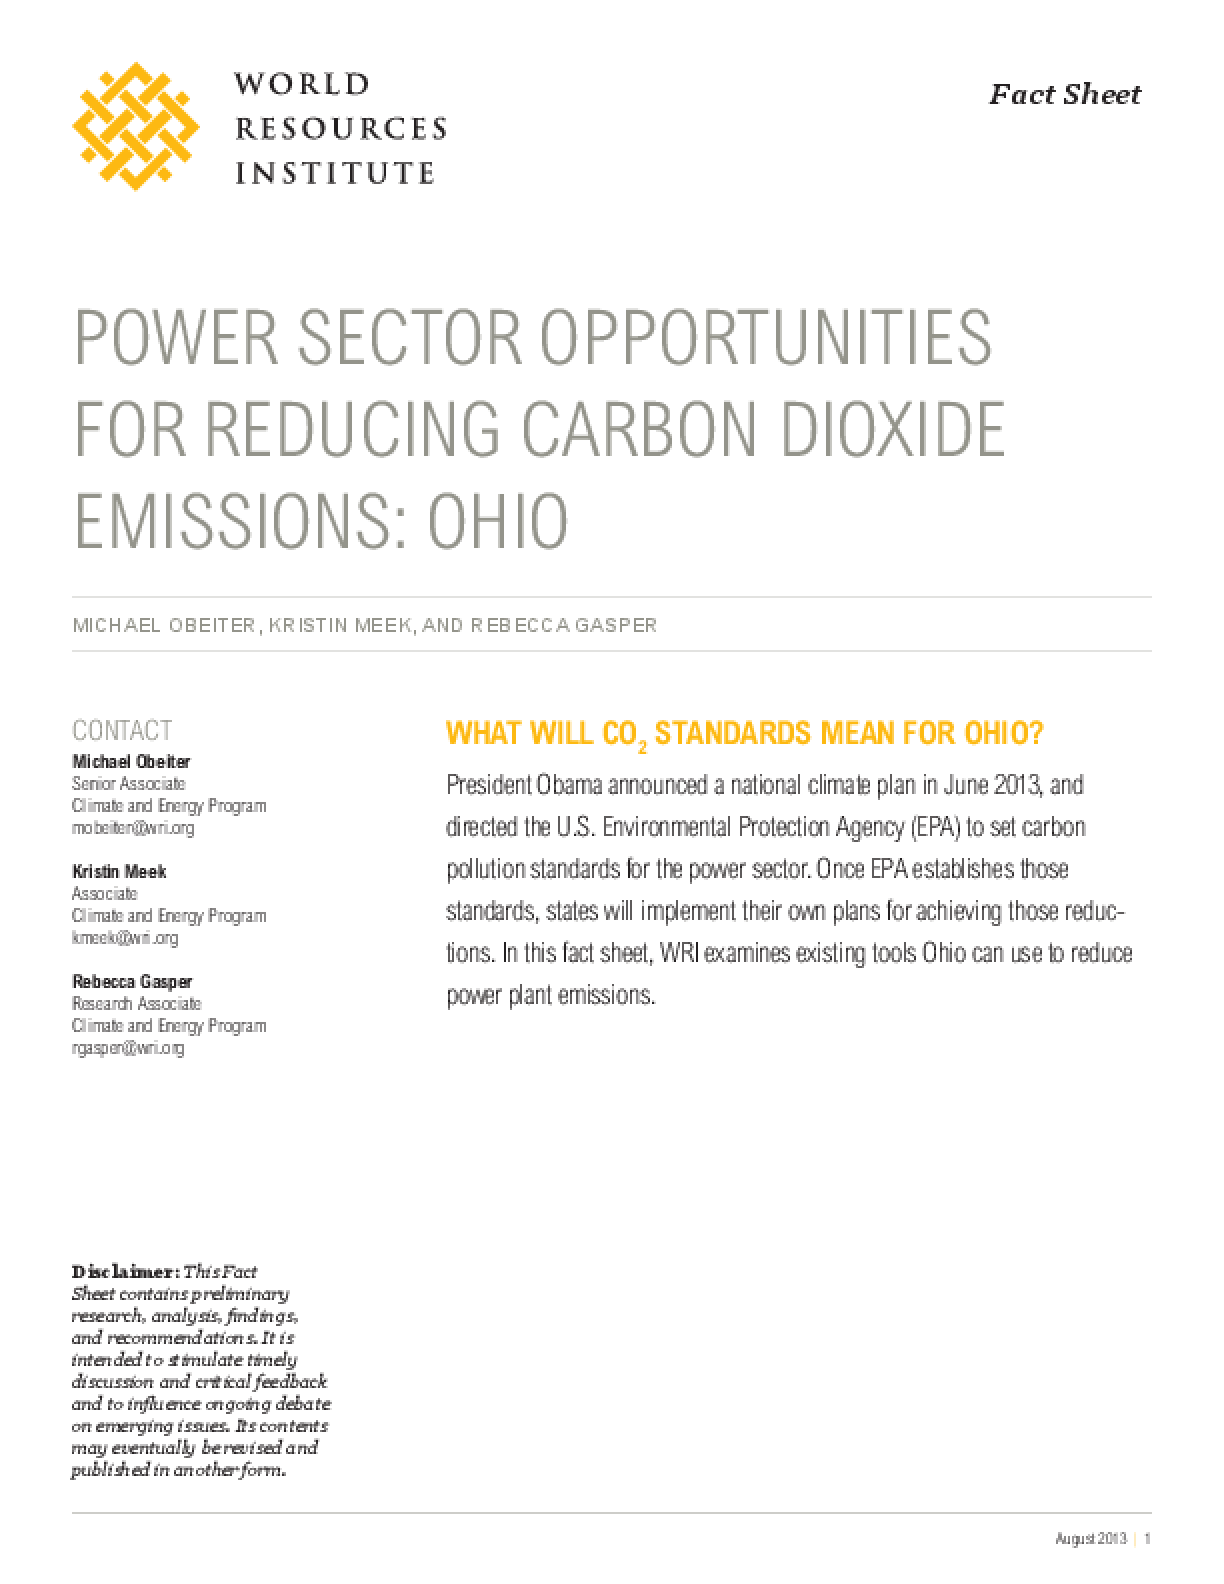 Power Sector Opportunities for Reducing Carbon Dioxide Emissions: Ohio